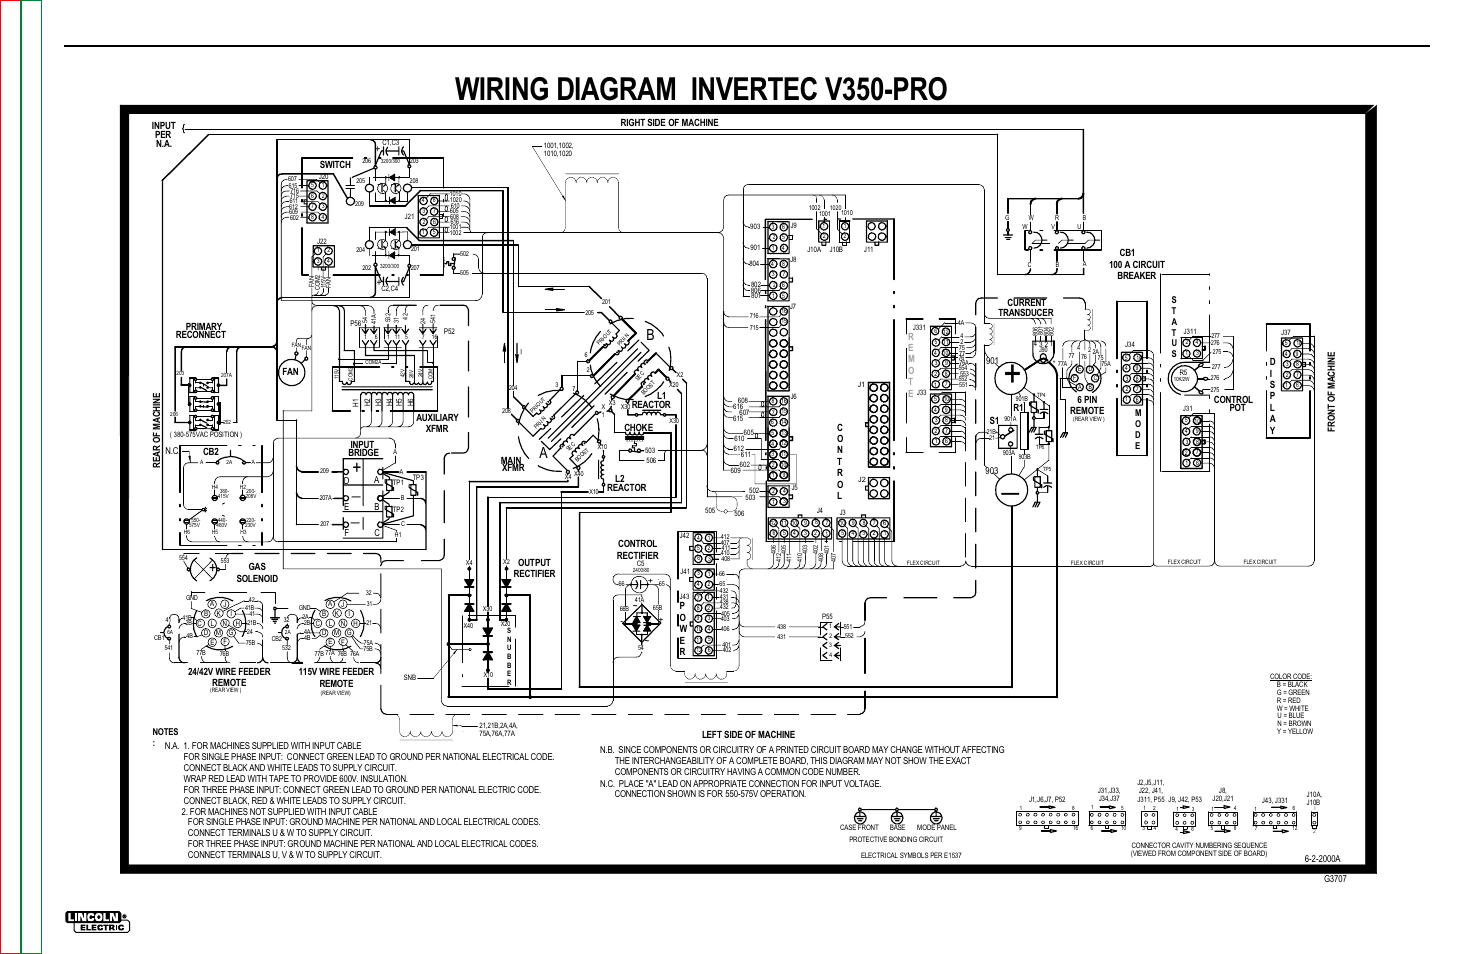 wiring diagram invertec v350 pro electrical diagrams. Black Bedroom Furniture Sets. Home Design Ideas